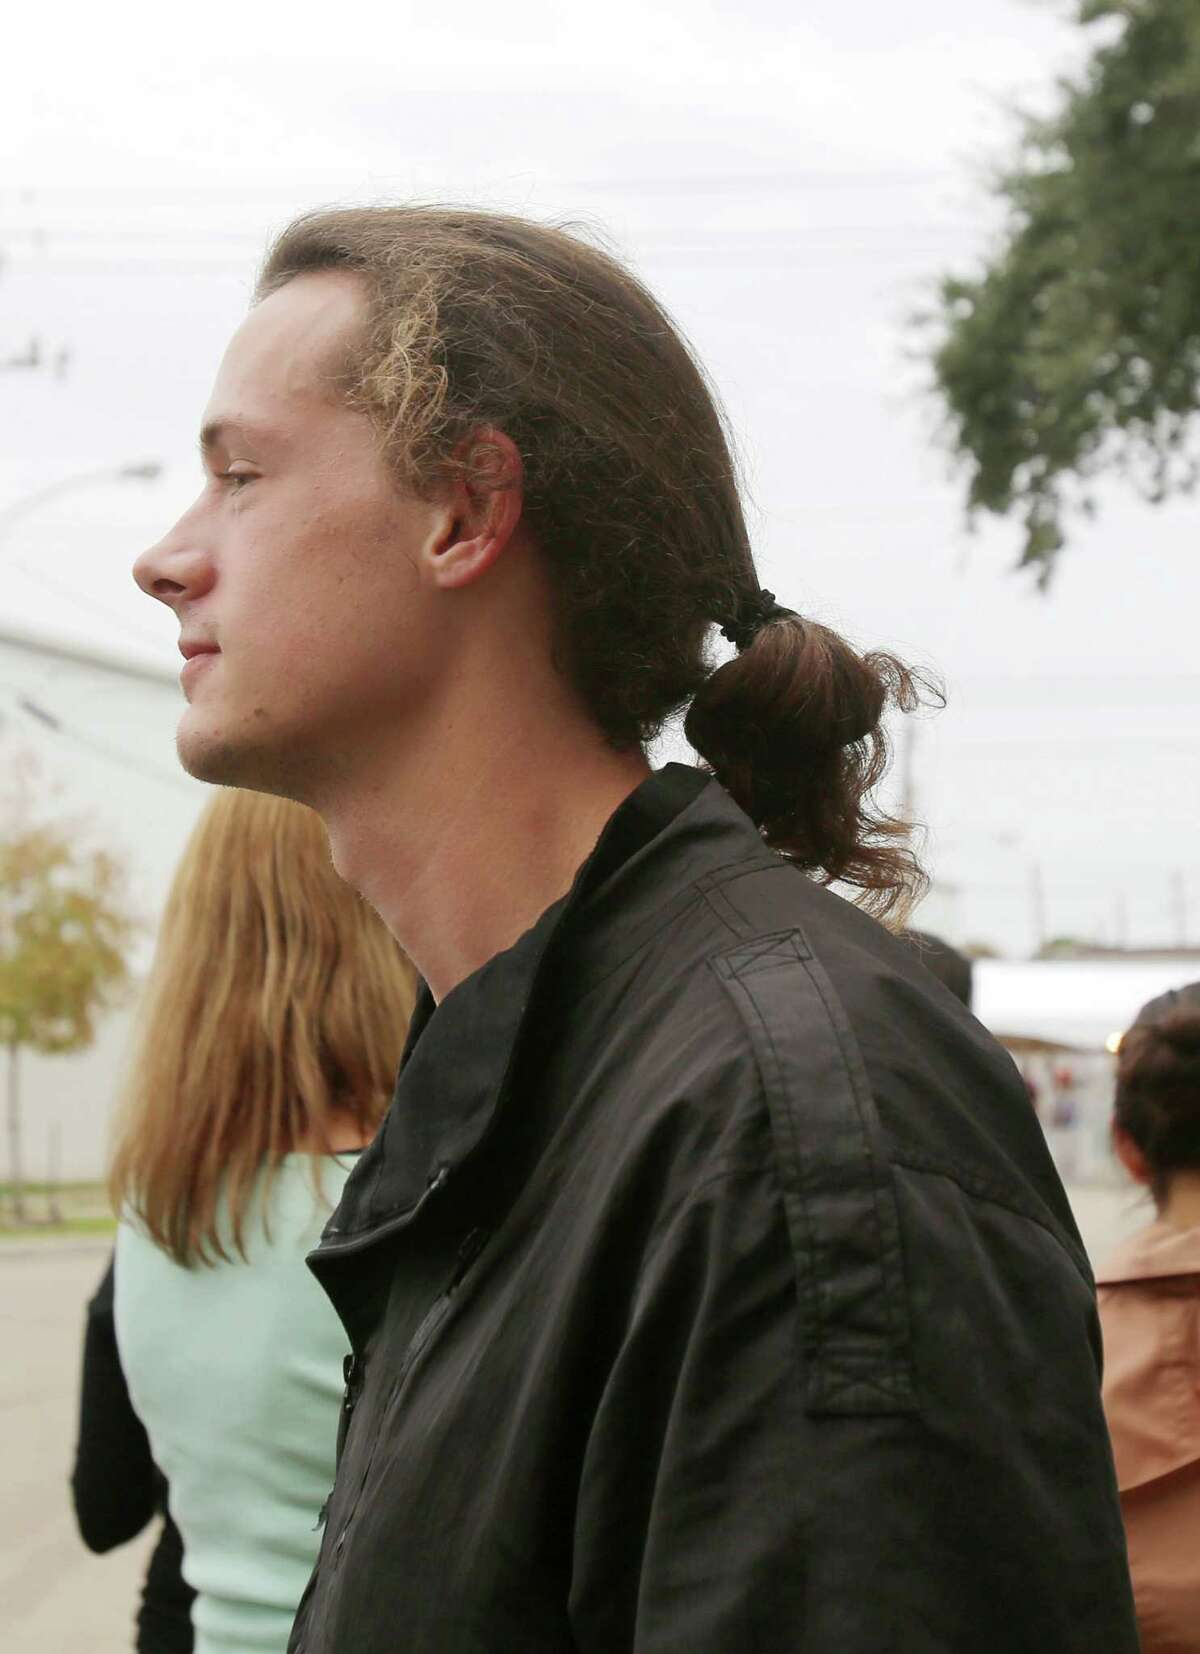 Man buns at Day for Night Festival Sunday, Dec. 20, 2015, in Houston.